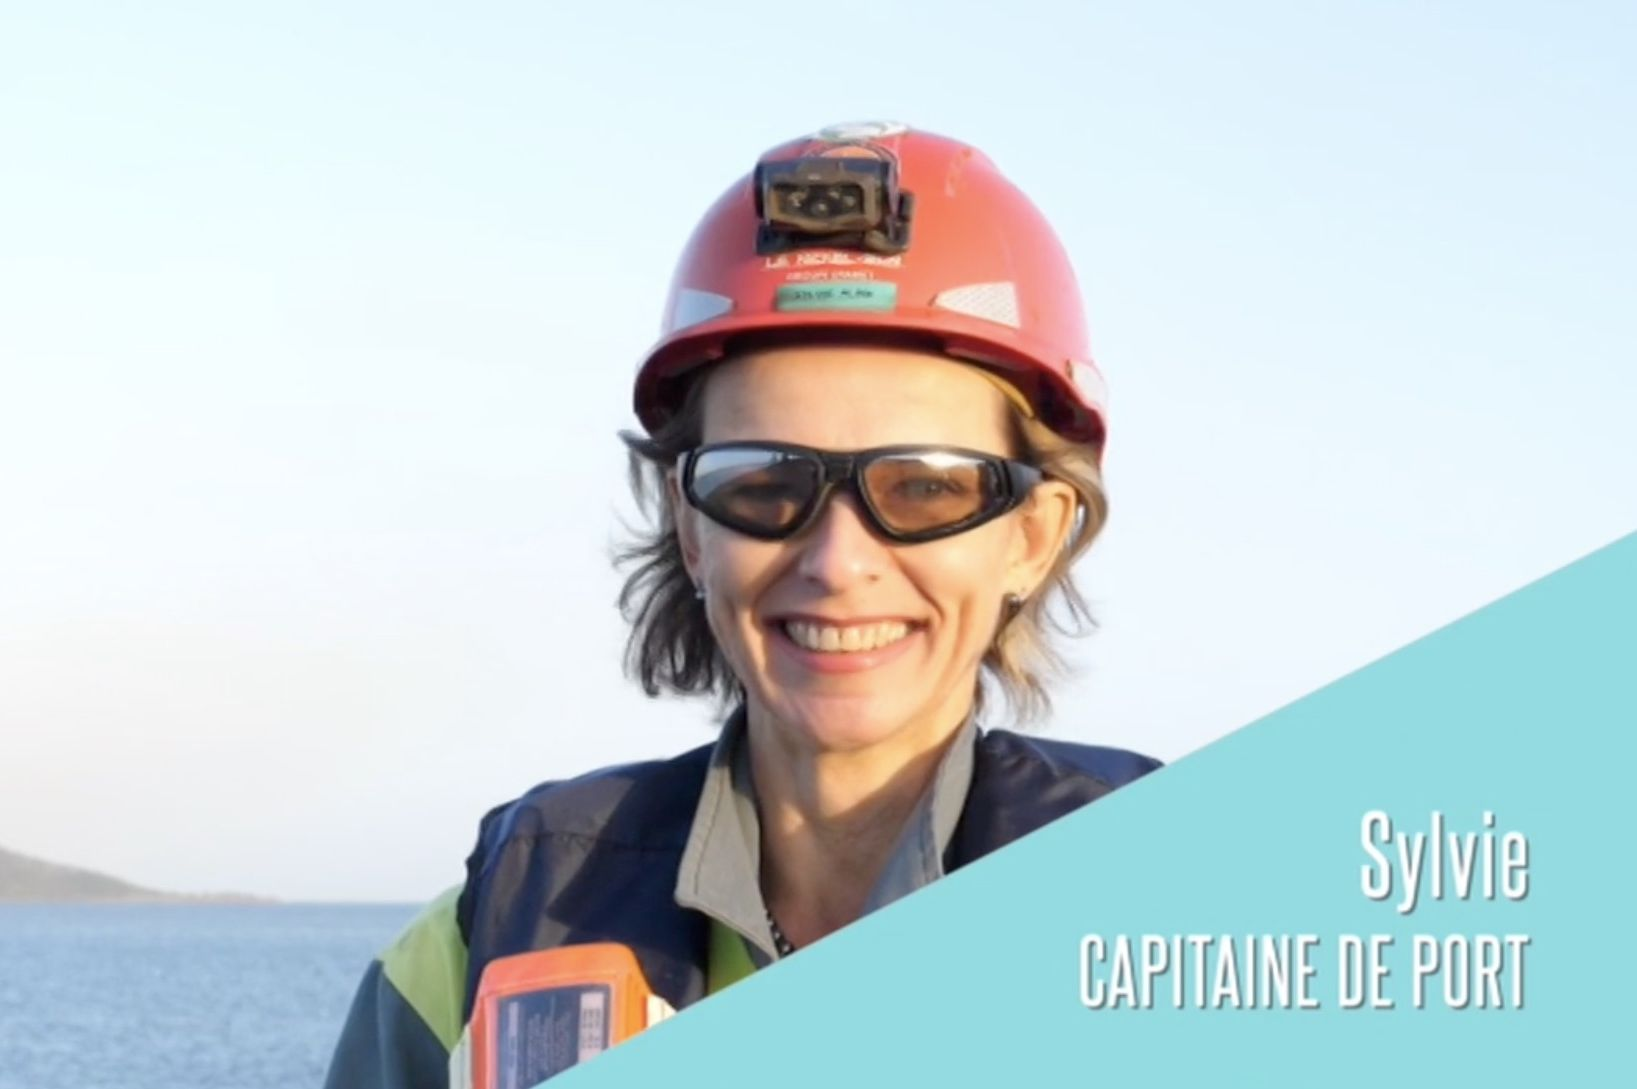 Métiers passion : Sylvie, capitaine de port